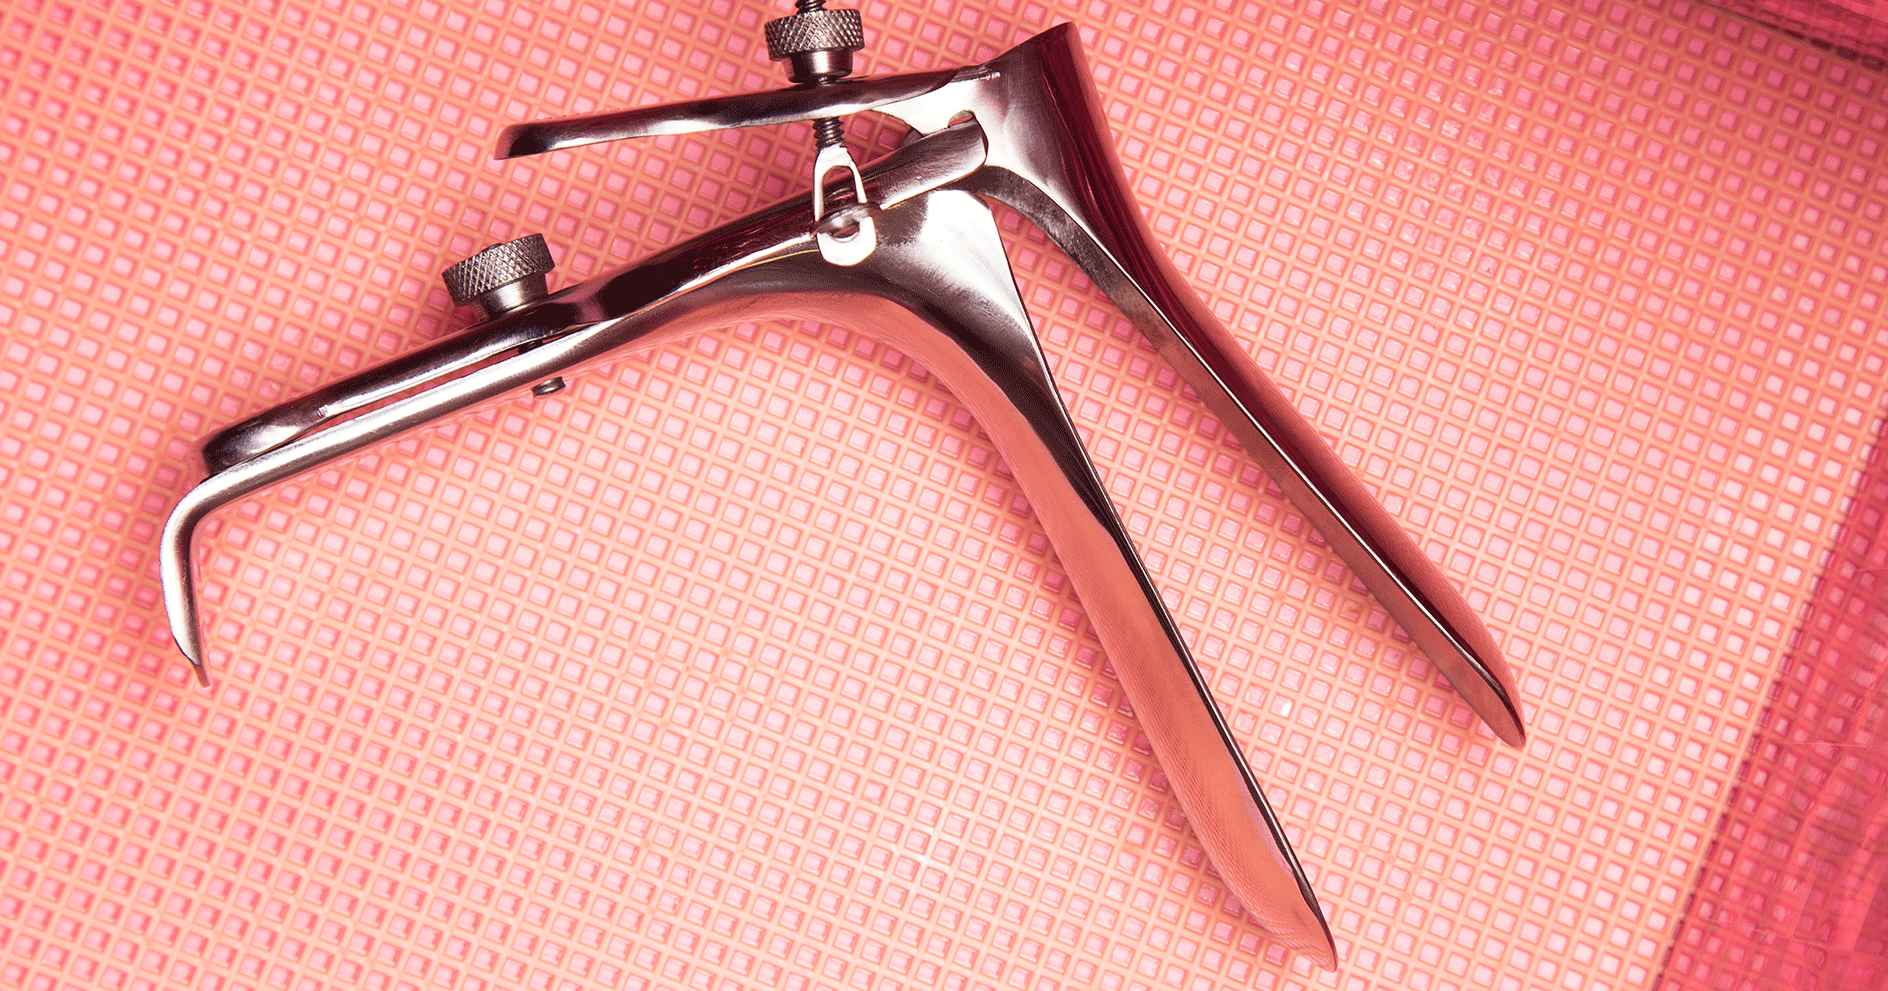 A Guide To Smear Tests & Abnormalities